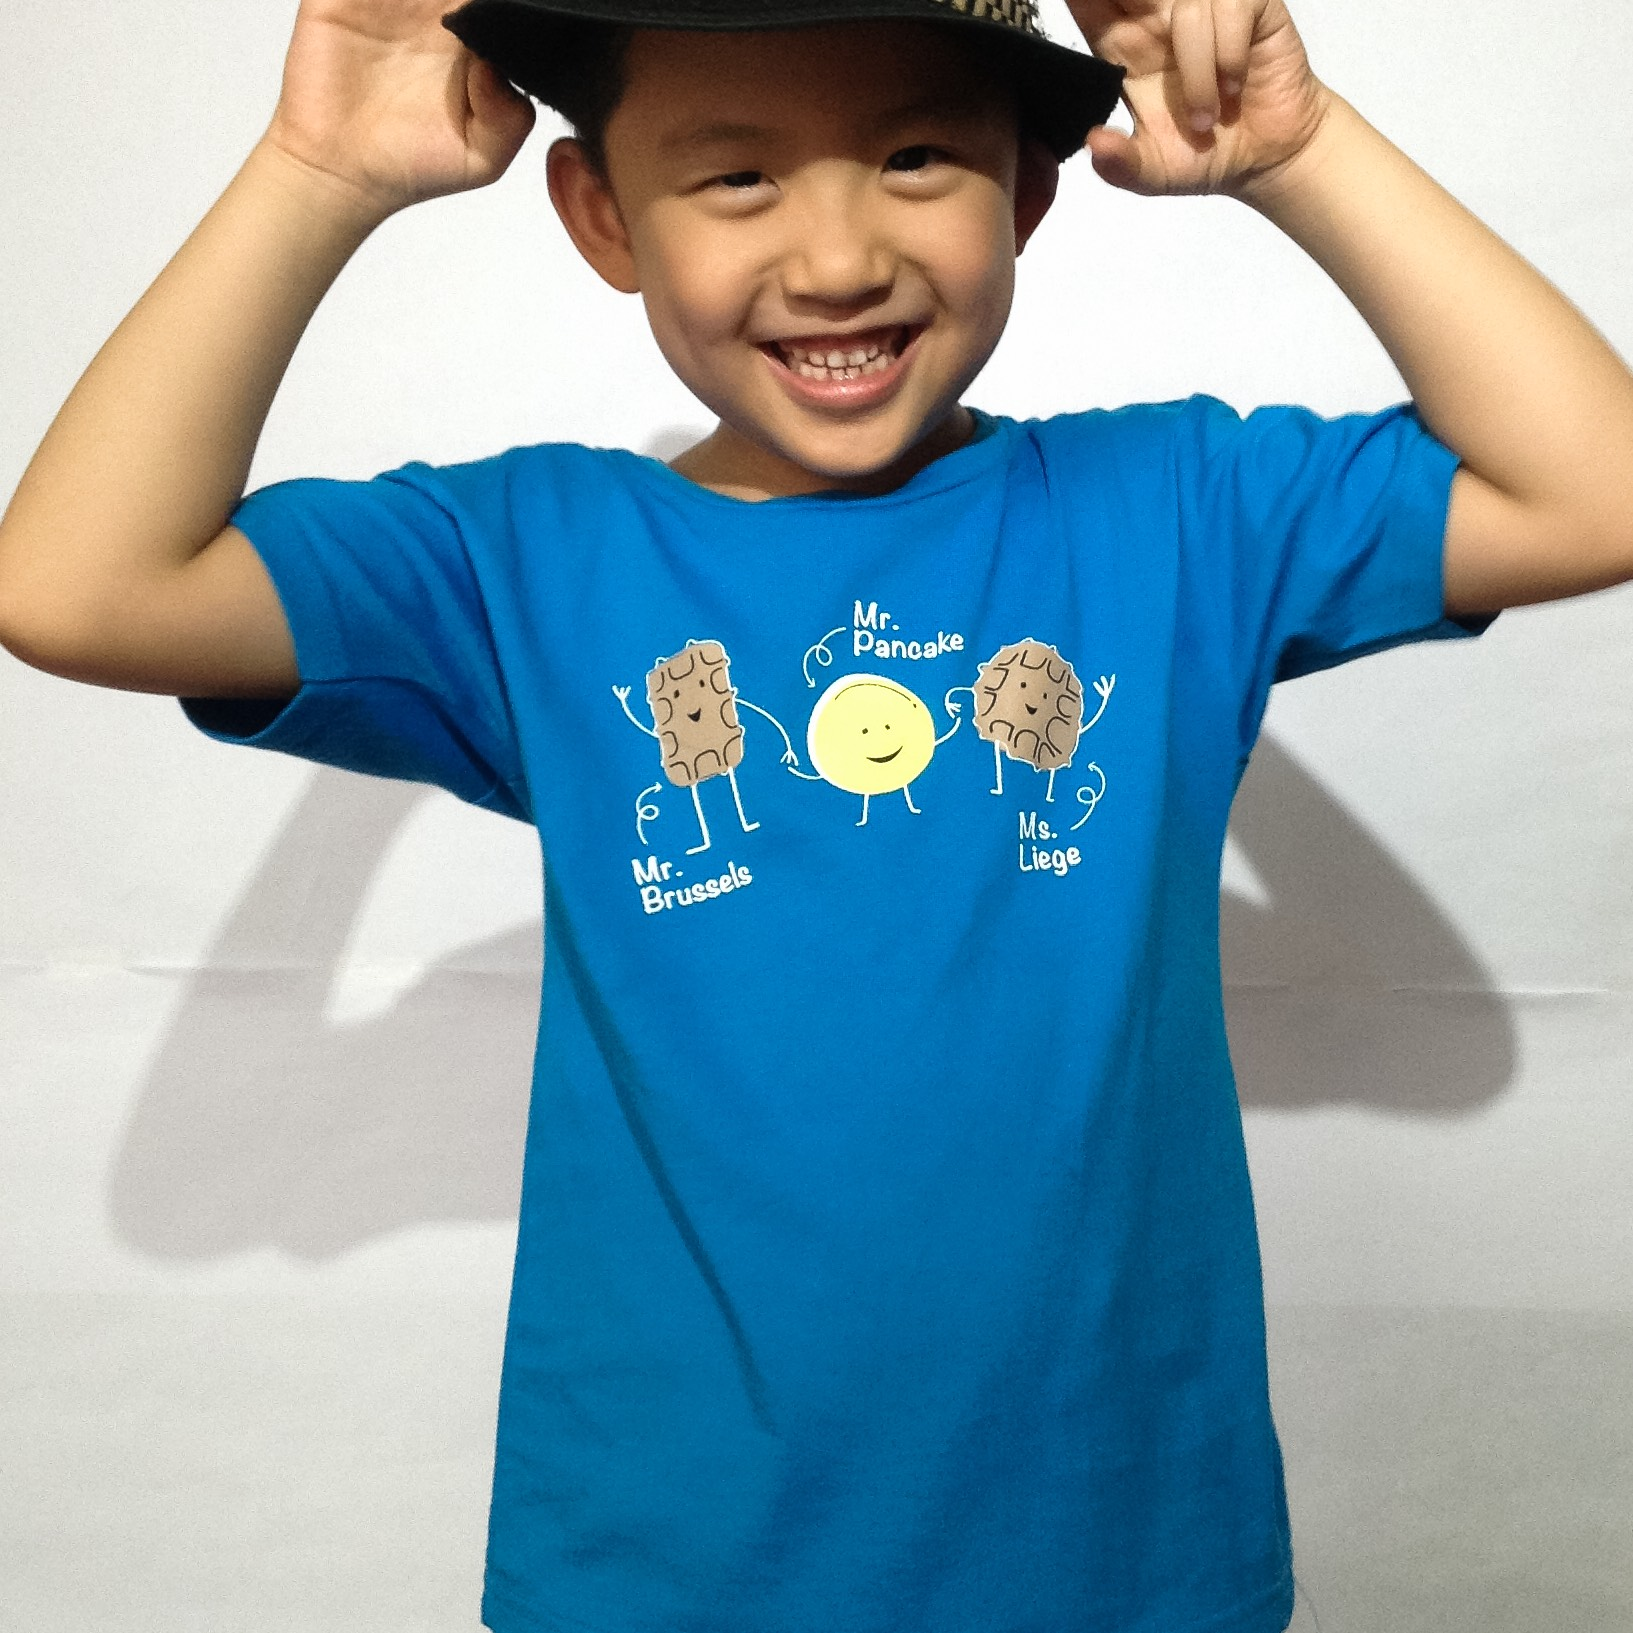 PHOP T-Shirt (Kids) (RM25)    Available in S, M, L    Colours: blue, sky blue, navy blue, green, pink, grey.     PHOP T-Shirt (Adults) RM25    Available in S, M, L, XL    Colours: black, blue, pink